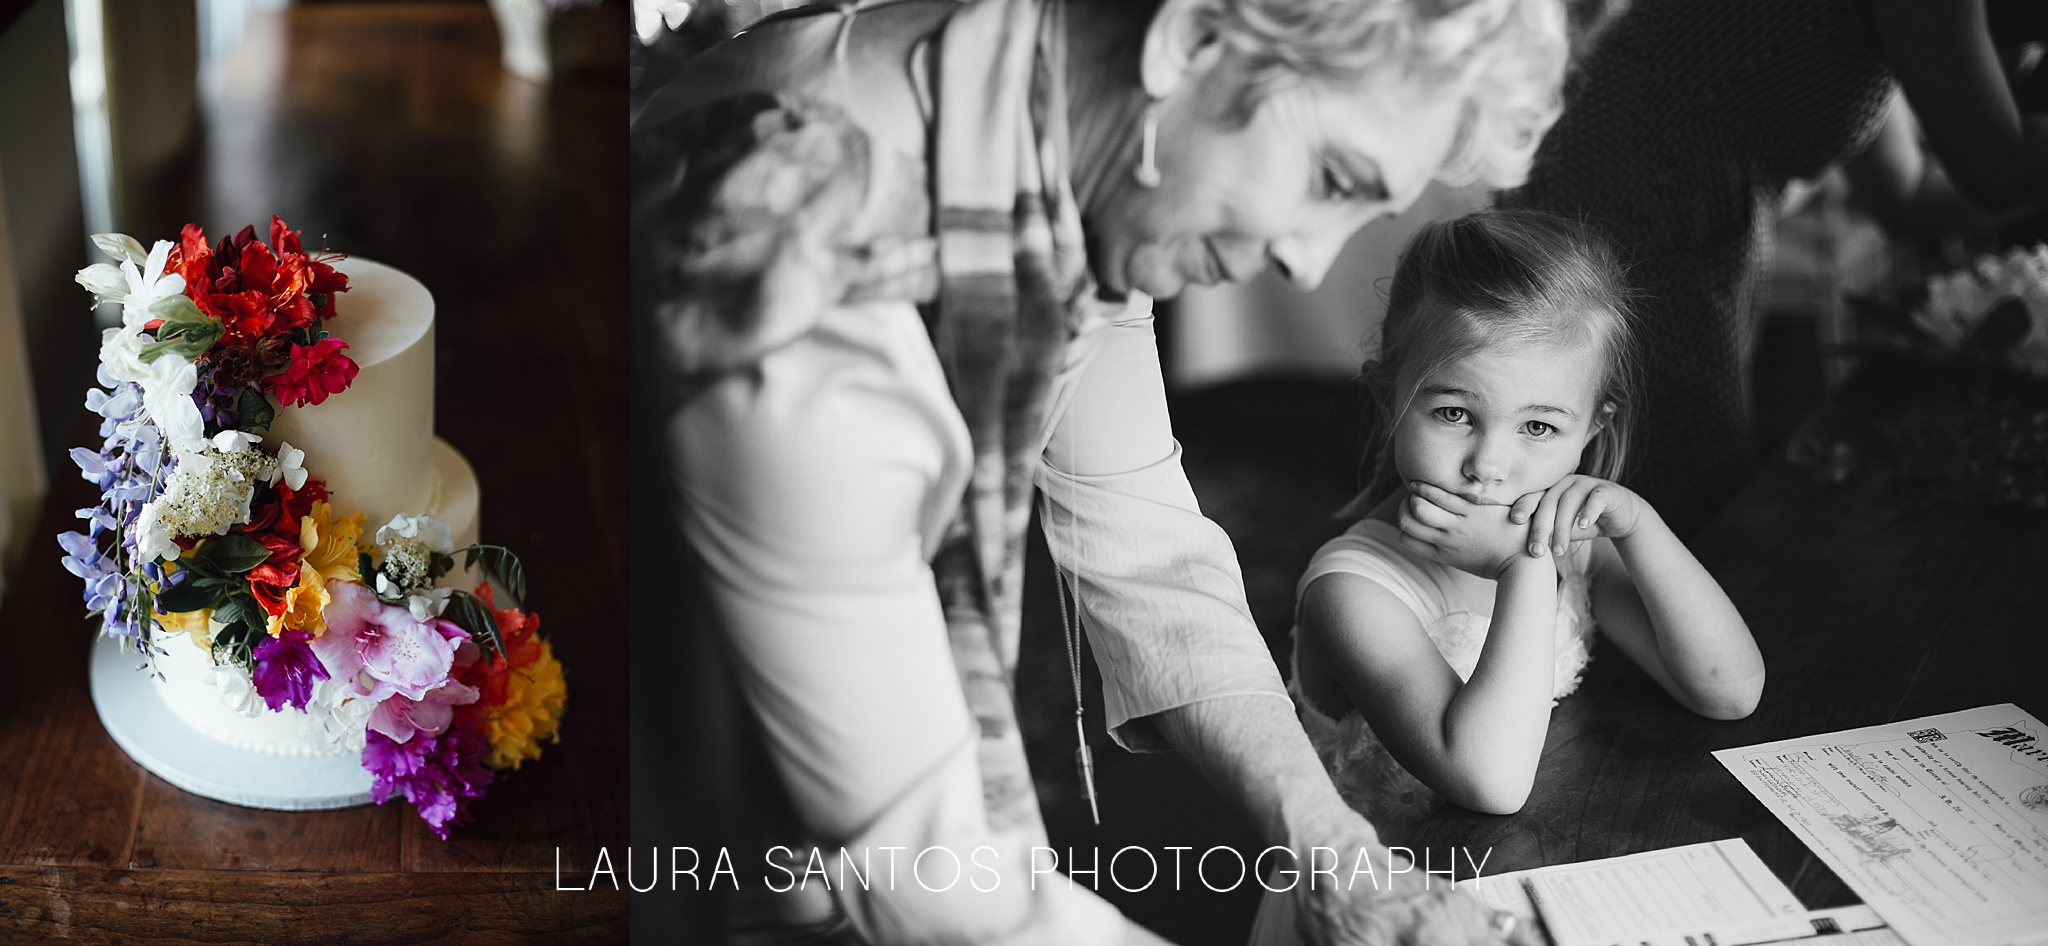 Laura Santos Photography Portland Oregon Family Photographer_0664.jpg